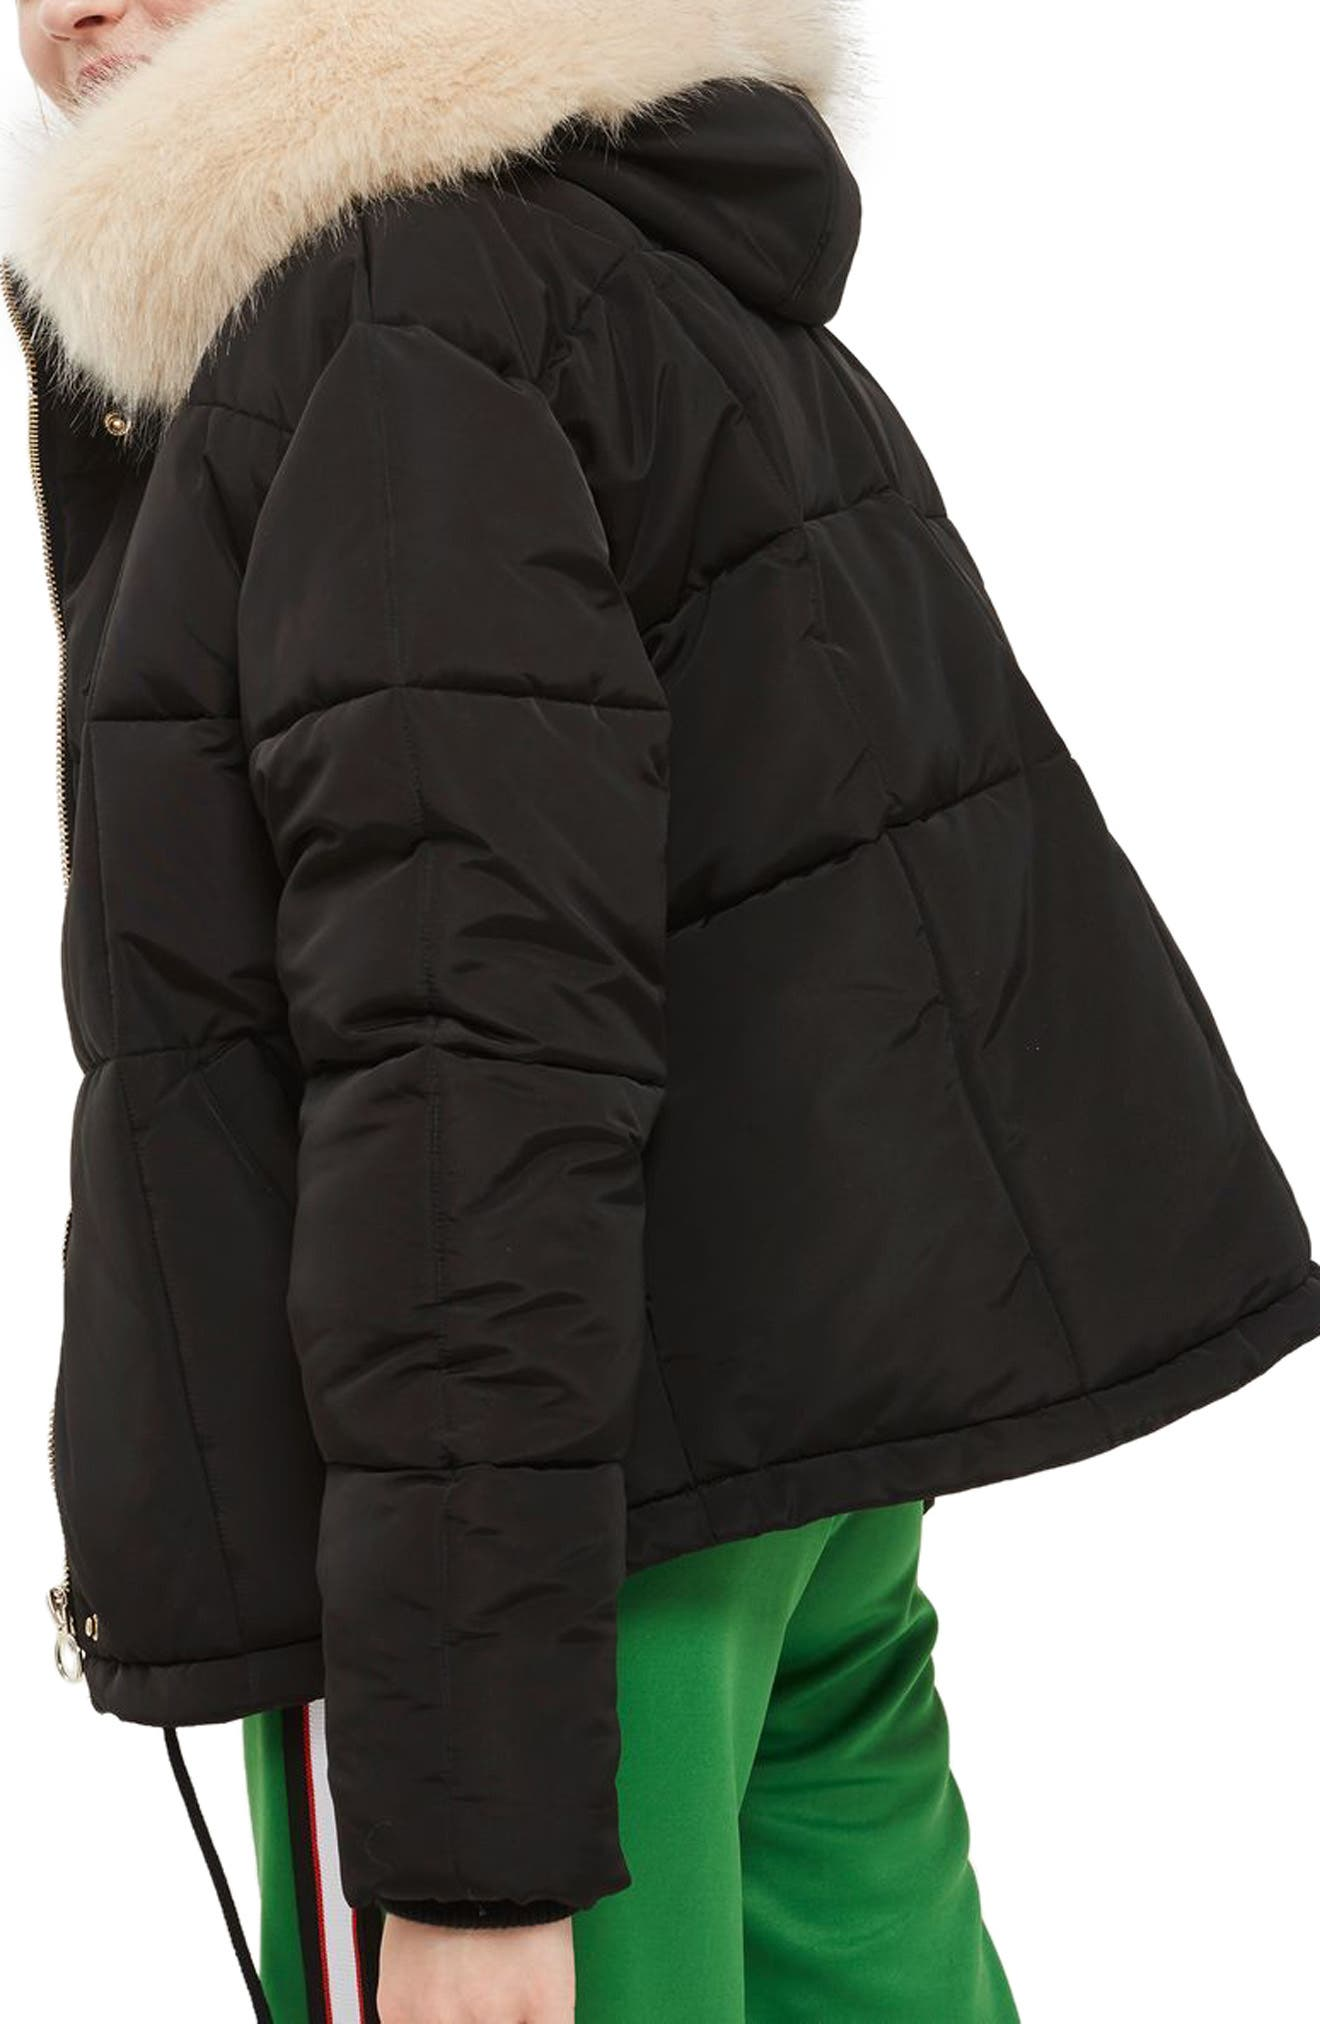 Faux Fur Lined Puffer Jacket,                             Alternate thumbnail 2, color,                             Black Multi